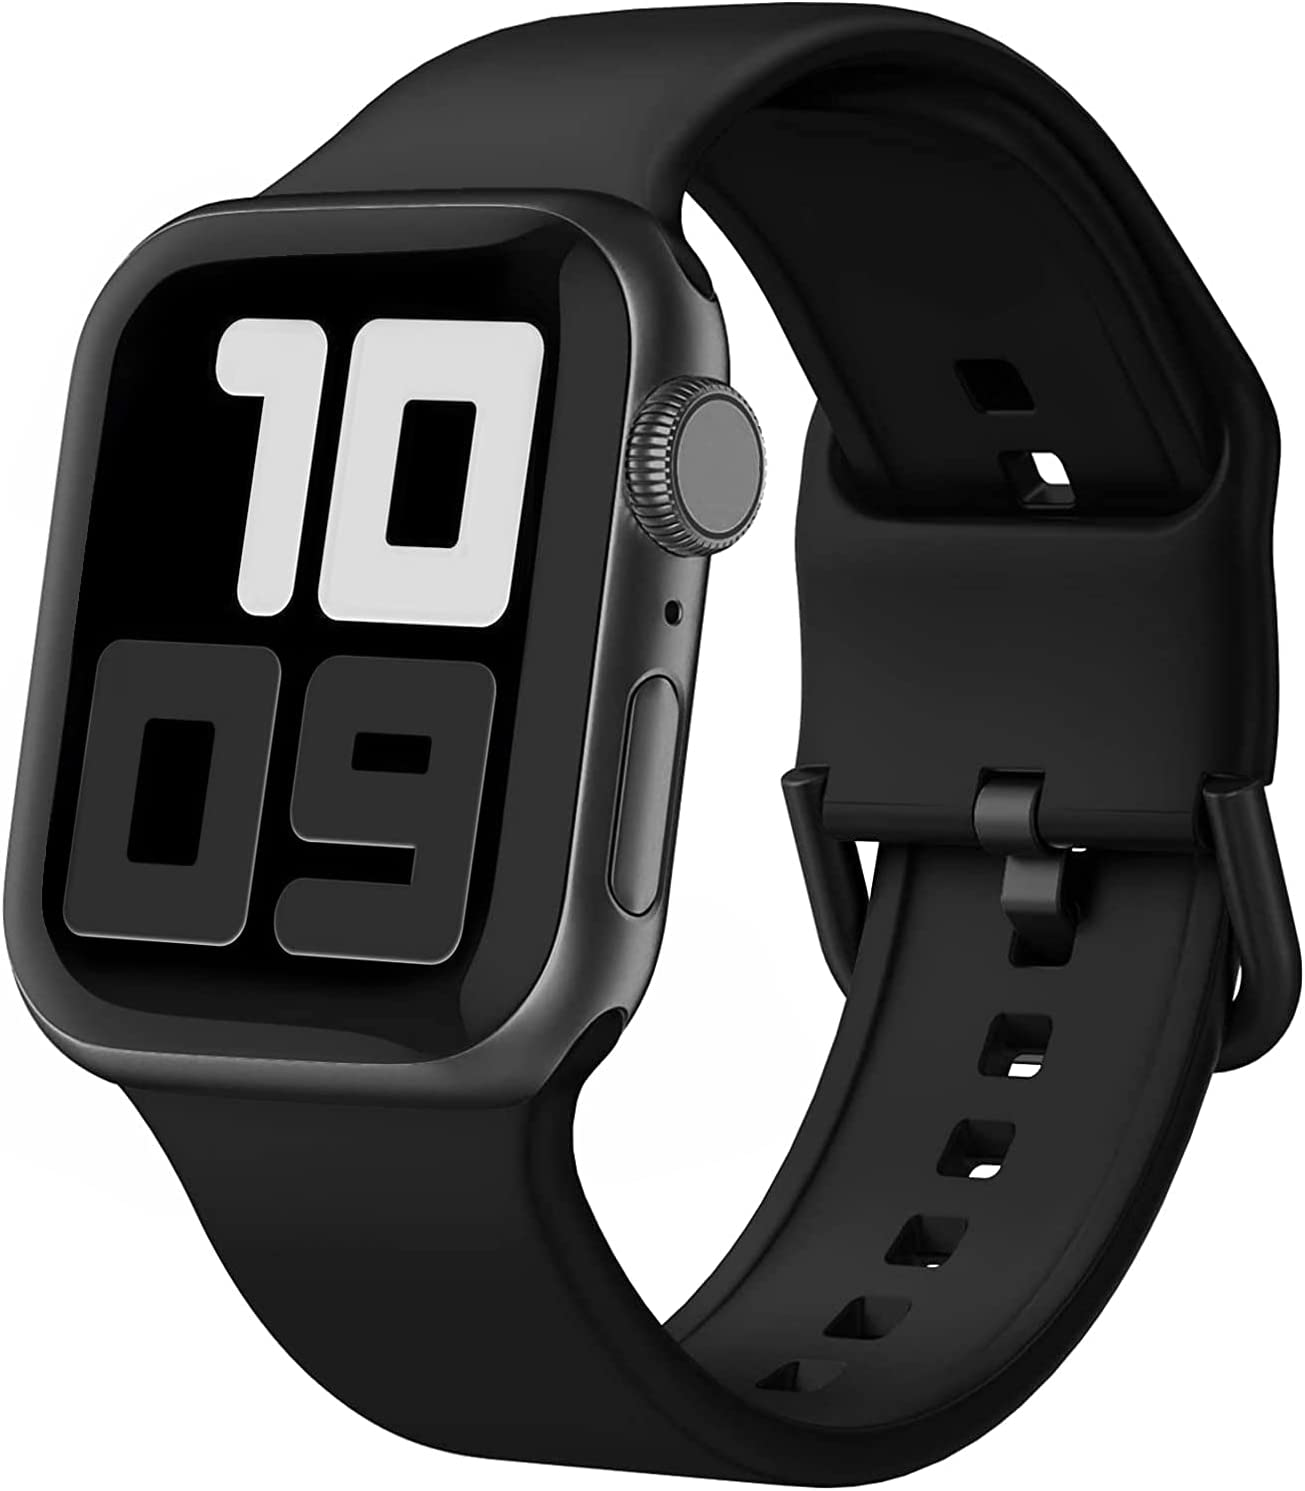 Blduzn Compatible with Apple Watch Bands 38mm 40mm, Soft Silicone Sport Wristbands Replacement Strap with Classic Clasp Compatible with iWatch Series SE 6 5 4 3 2 1 for Women Men, Black